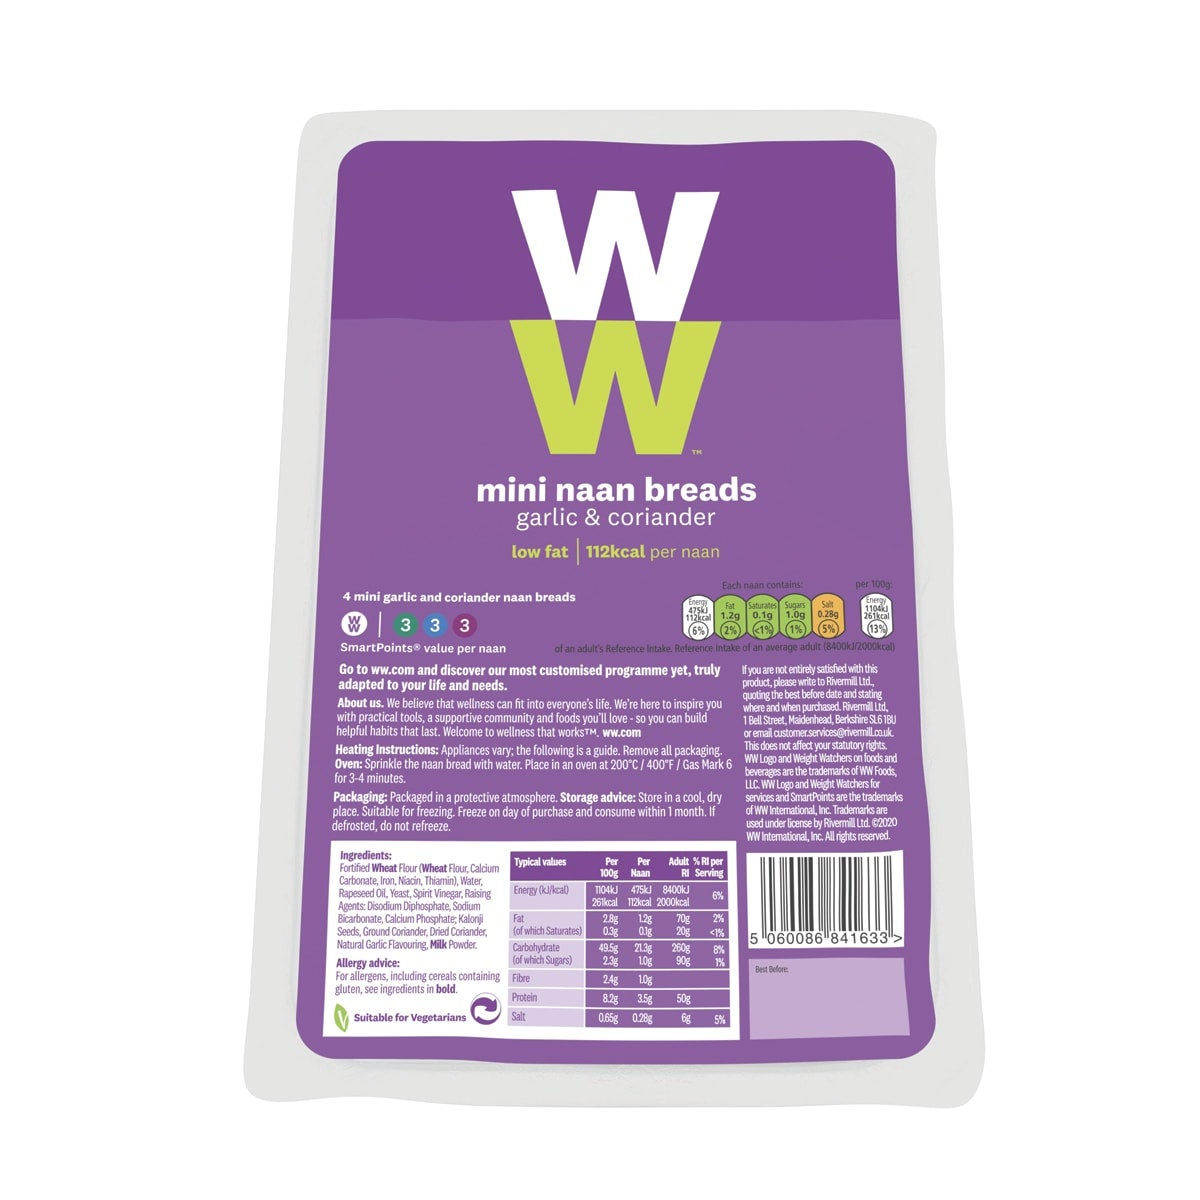 Pack of 4, WW Mini Garlic and Coriander Naan Bread, made with kalonji black onion seeds, perfect with a takeaway, 3 SmartPoints values, suitable for vegetarians,